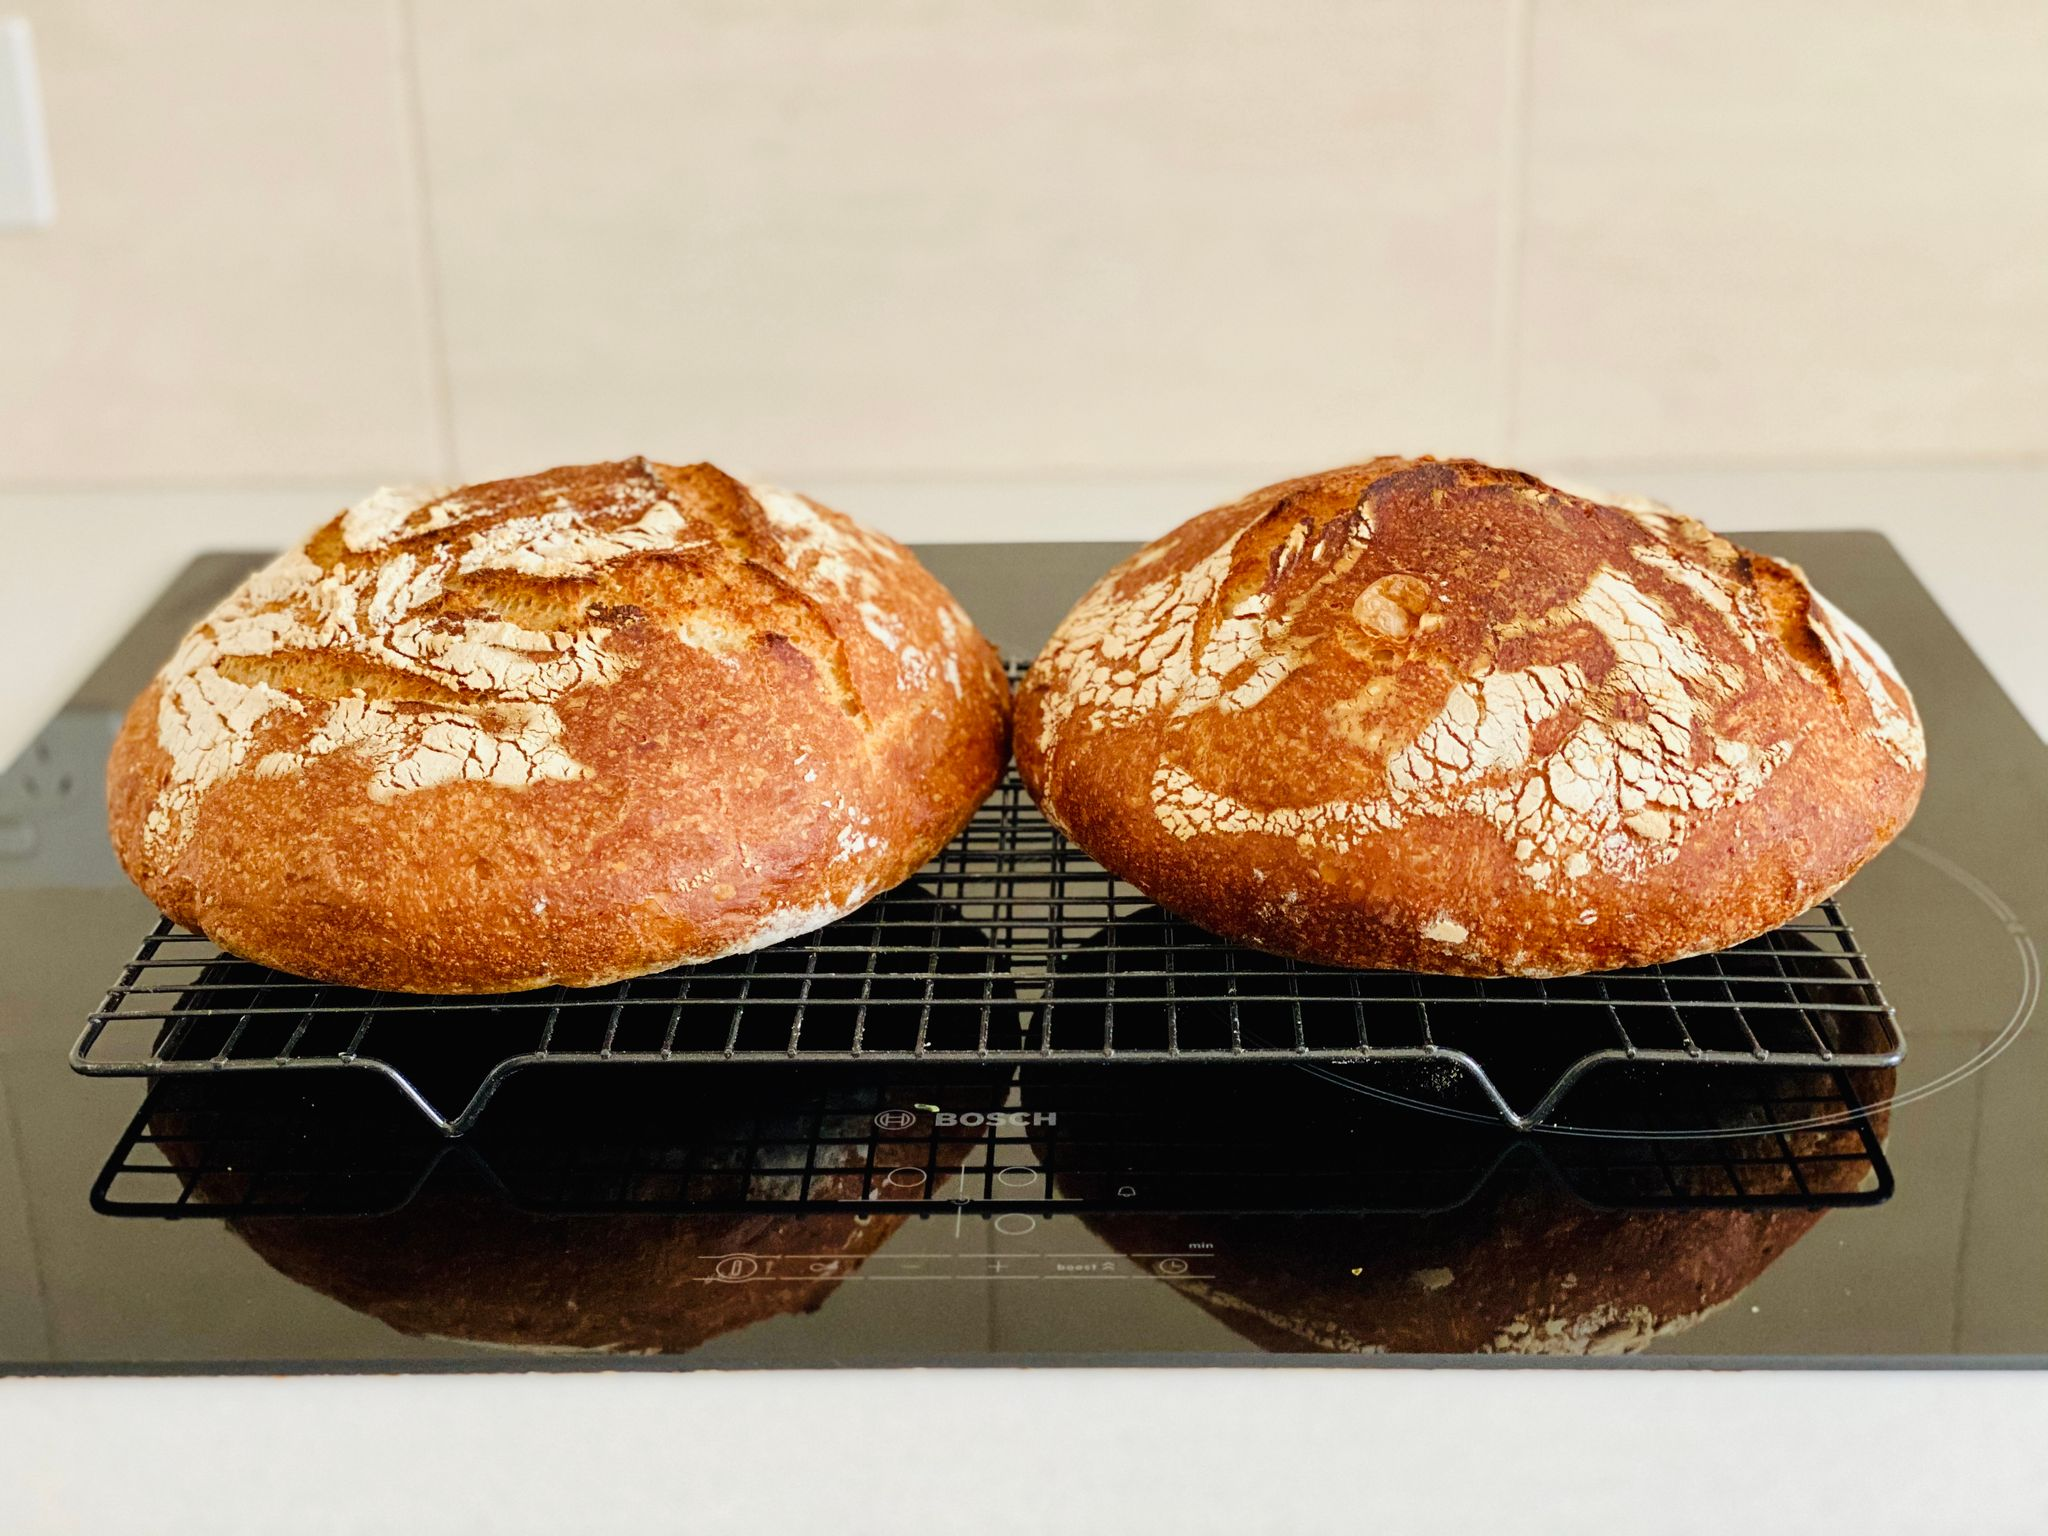 Two round brown loaves of bread sitting on a cooling rack.